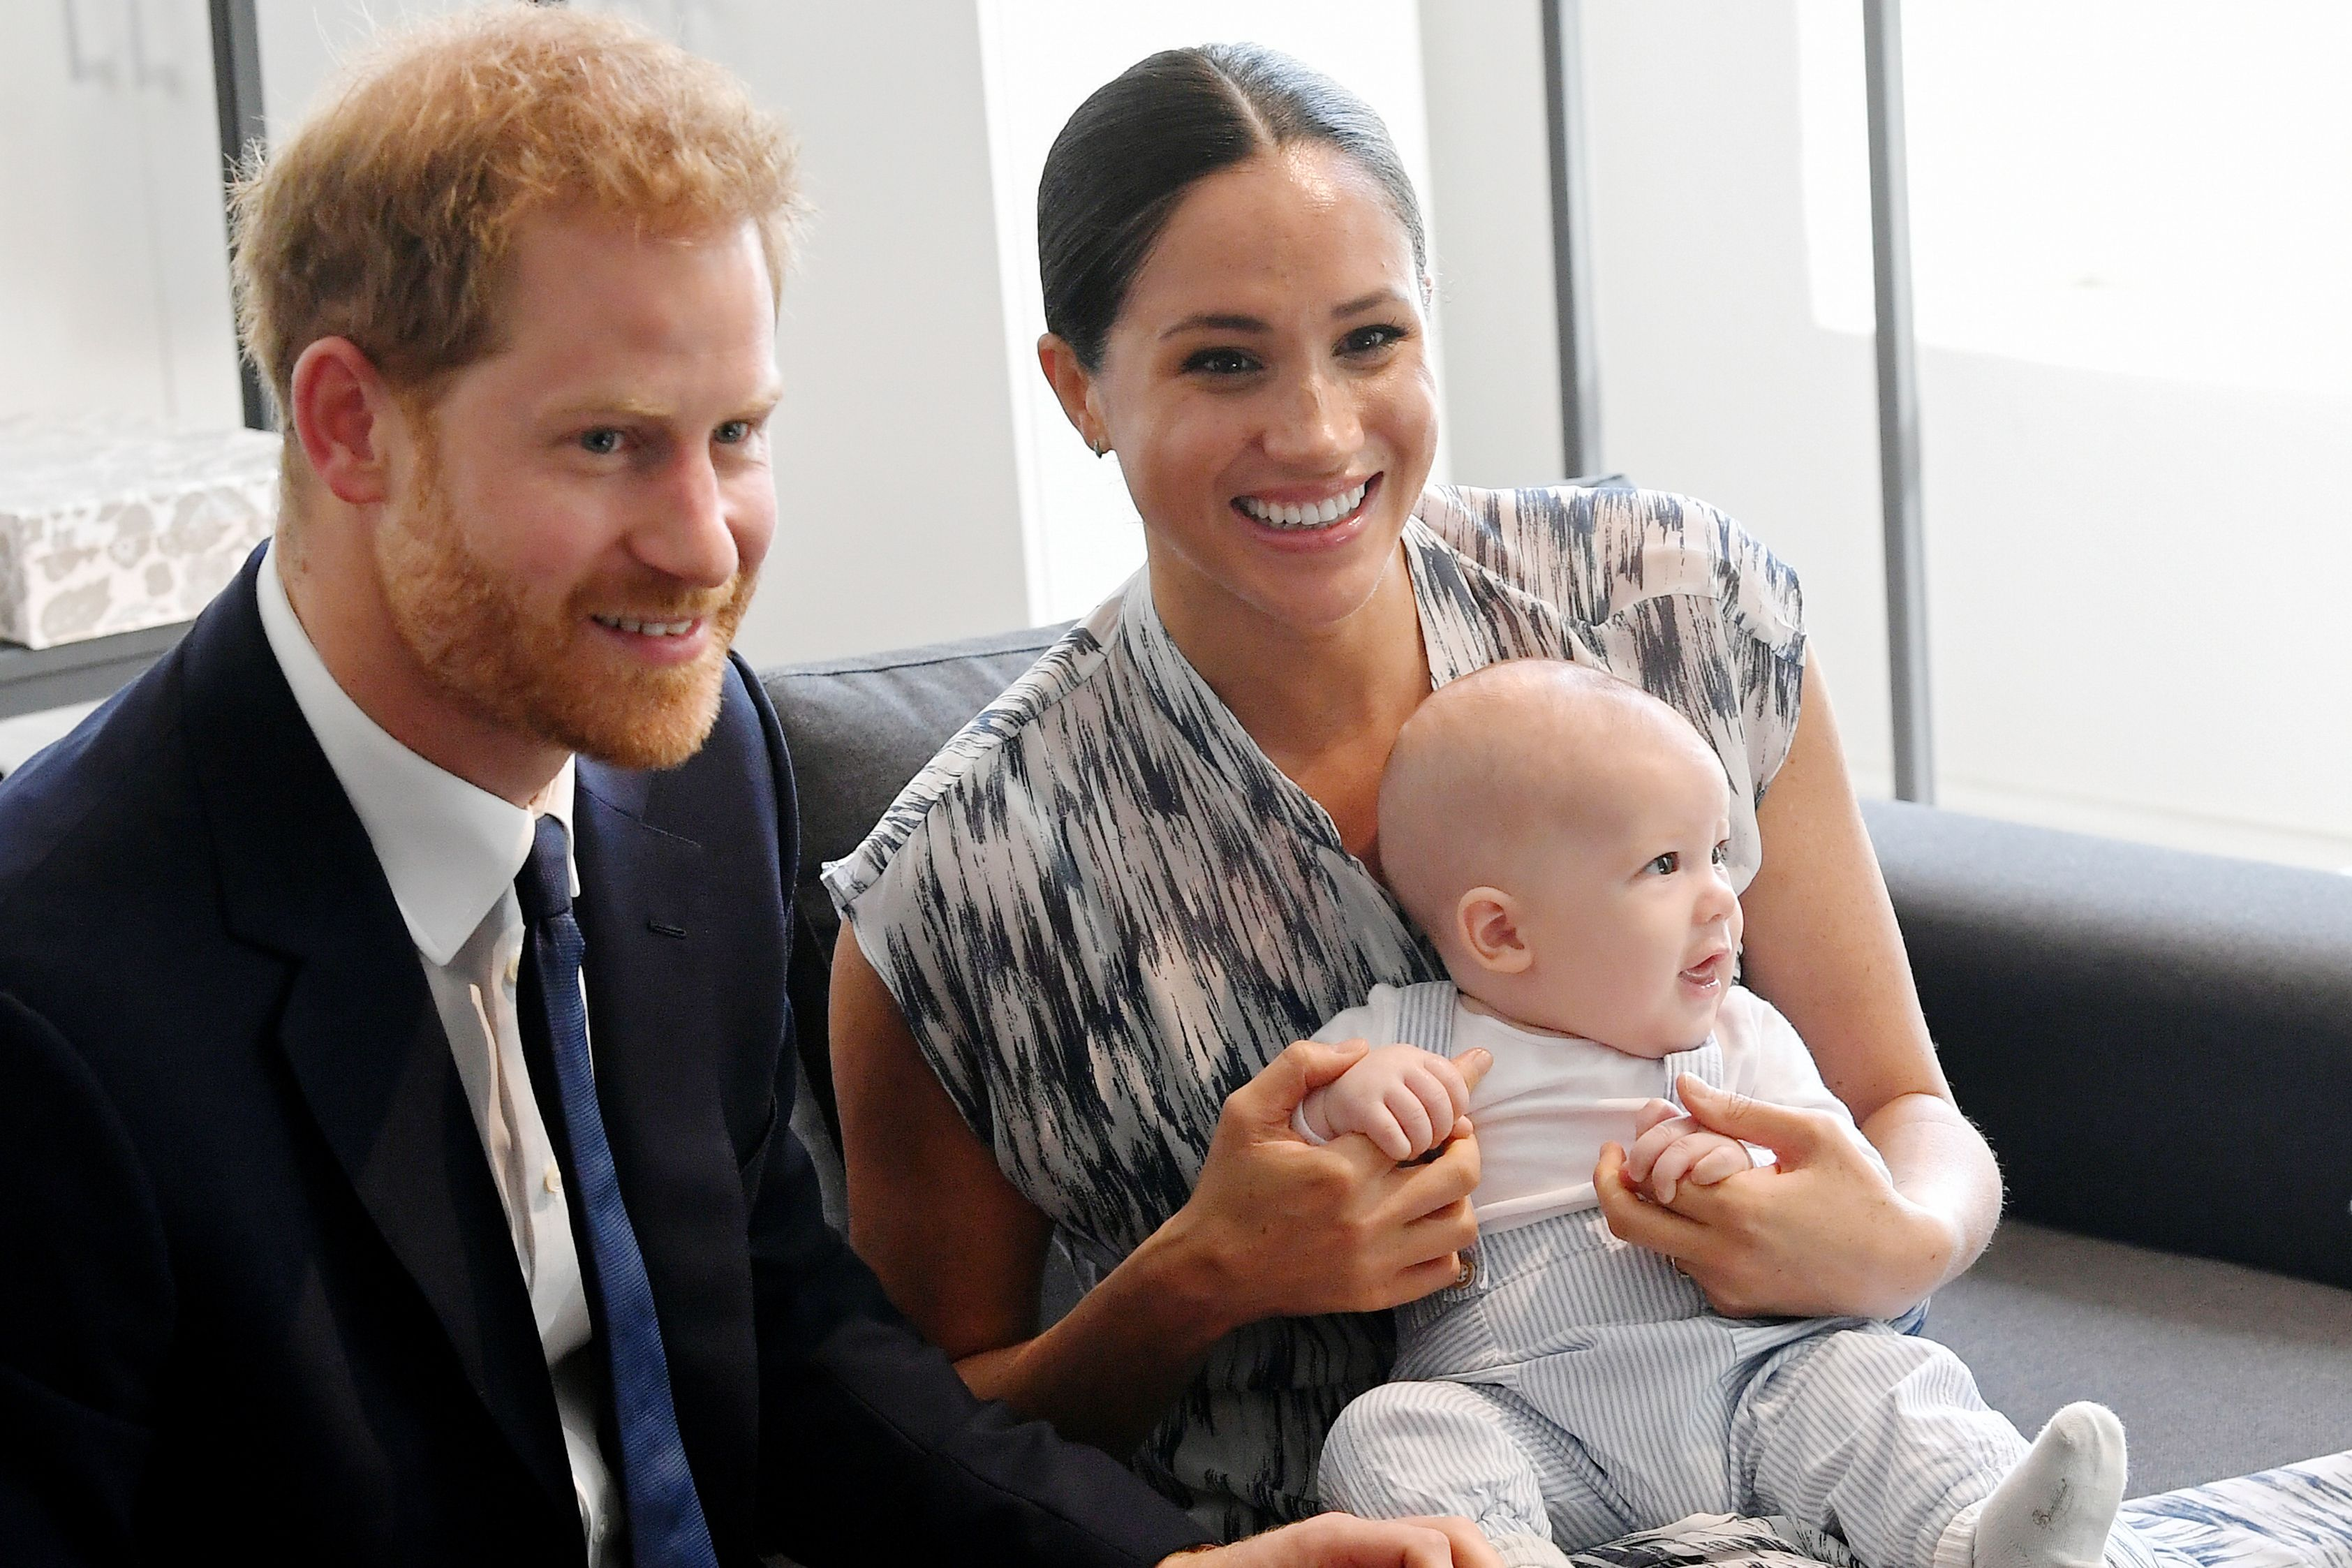 Prince Harry, Meghan Markle, and Archie Mountbatten-Windsor at the Desmond & Leah Tutu Legacy Foundation during their royal tour of South Africa on September 25, 2019. | Photo: Getty Images